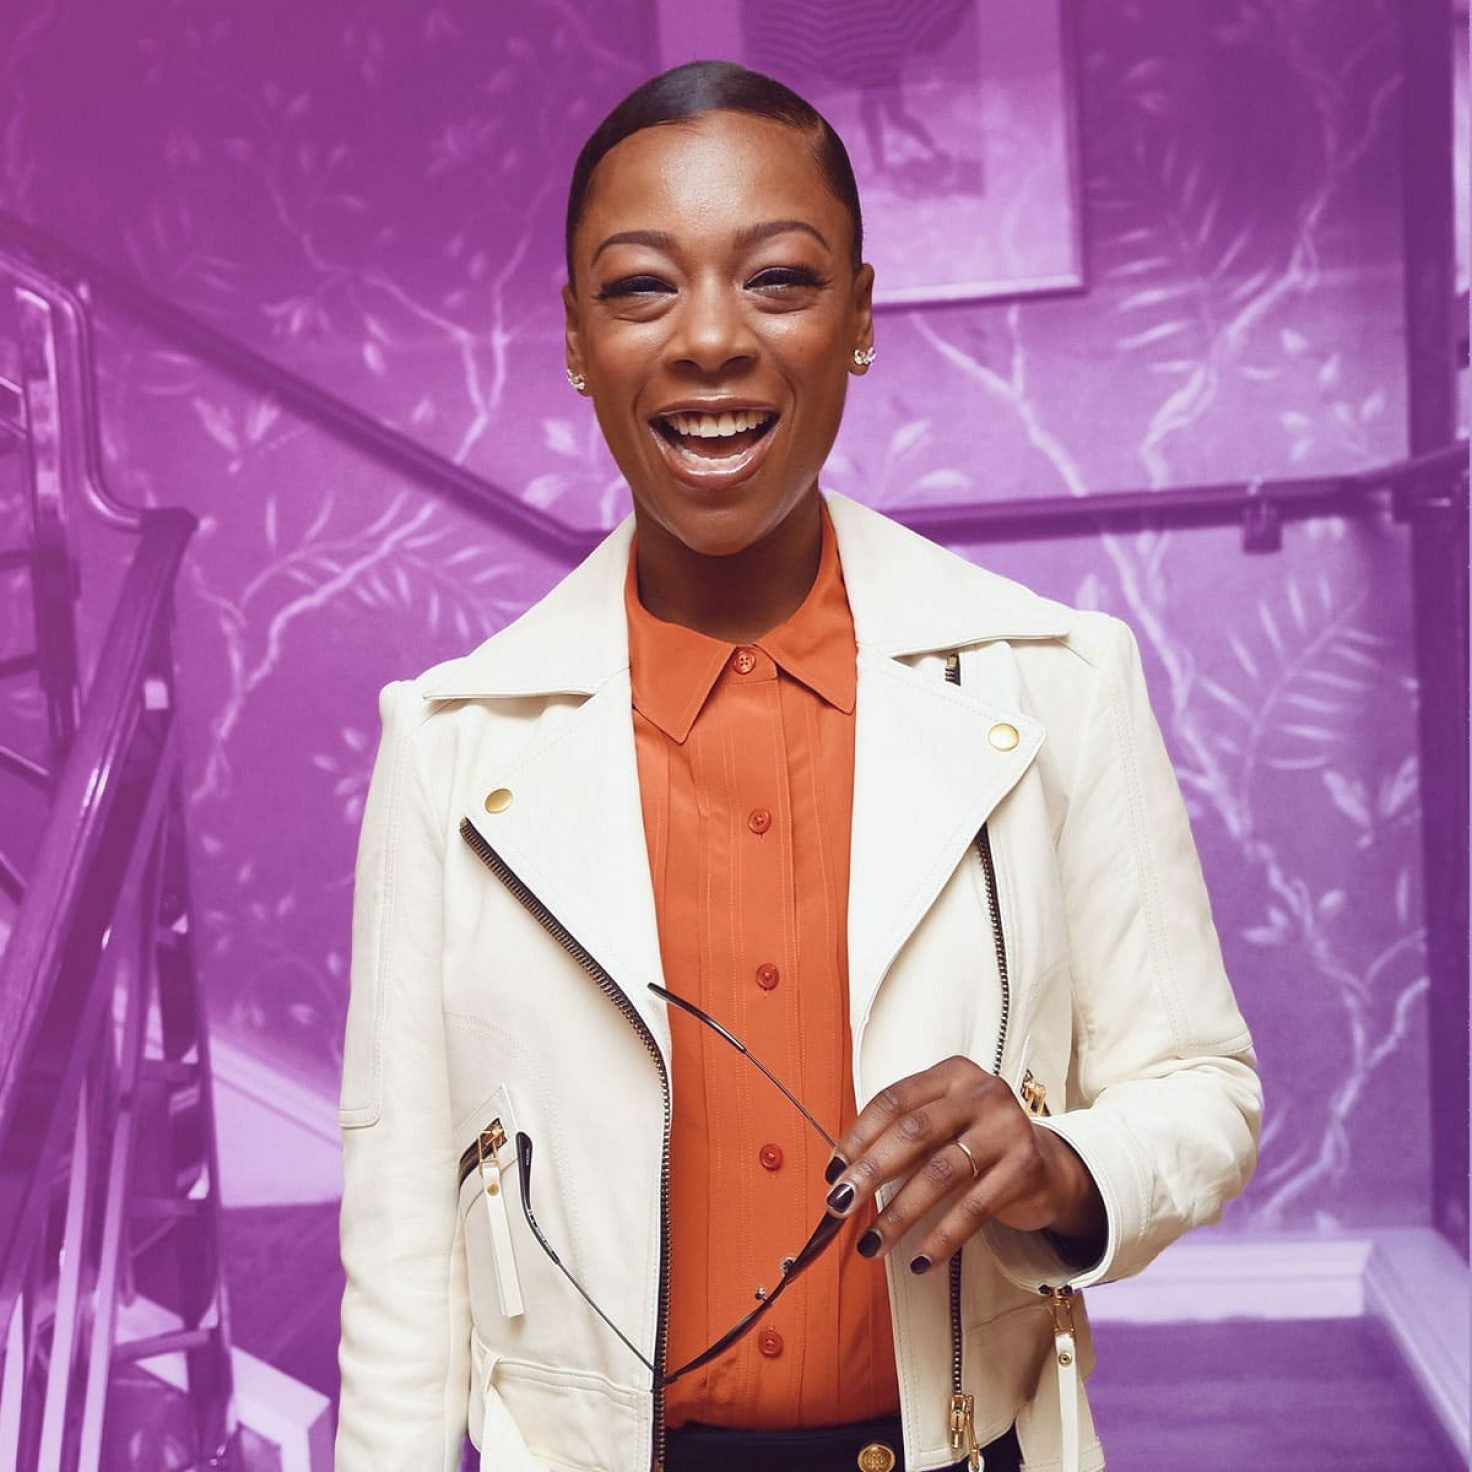 Samira Wiley Has Finally Found Her Voice, And She's Not Afraid To Use It